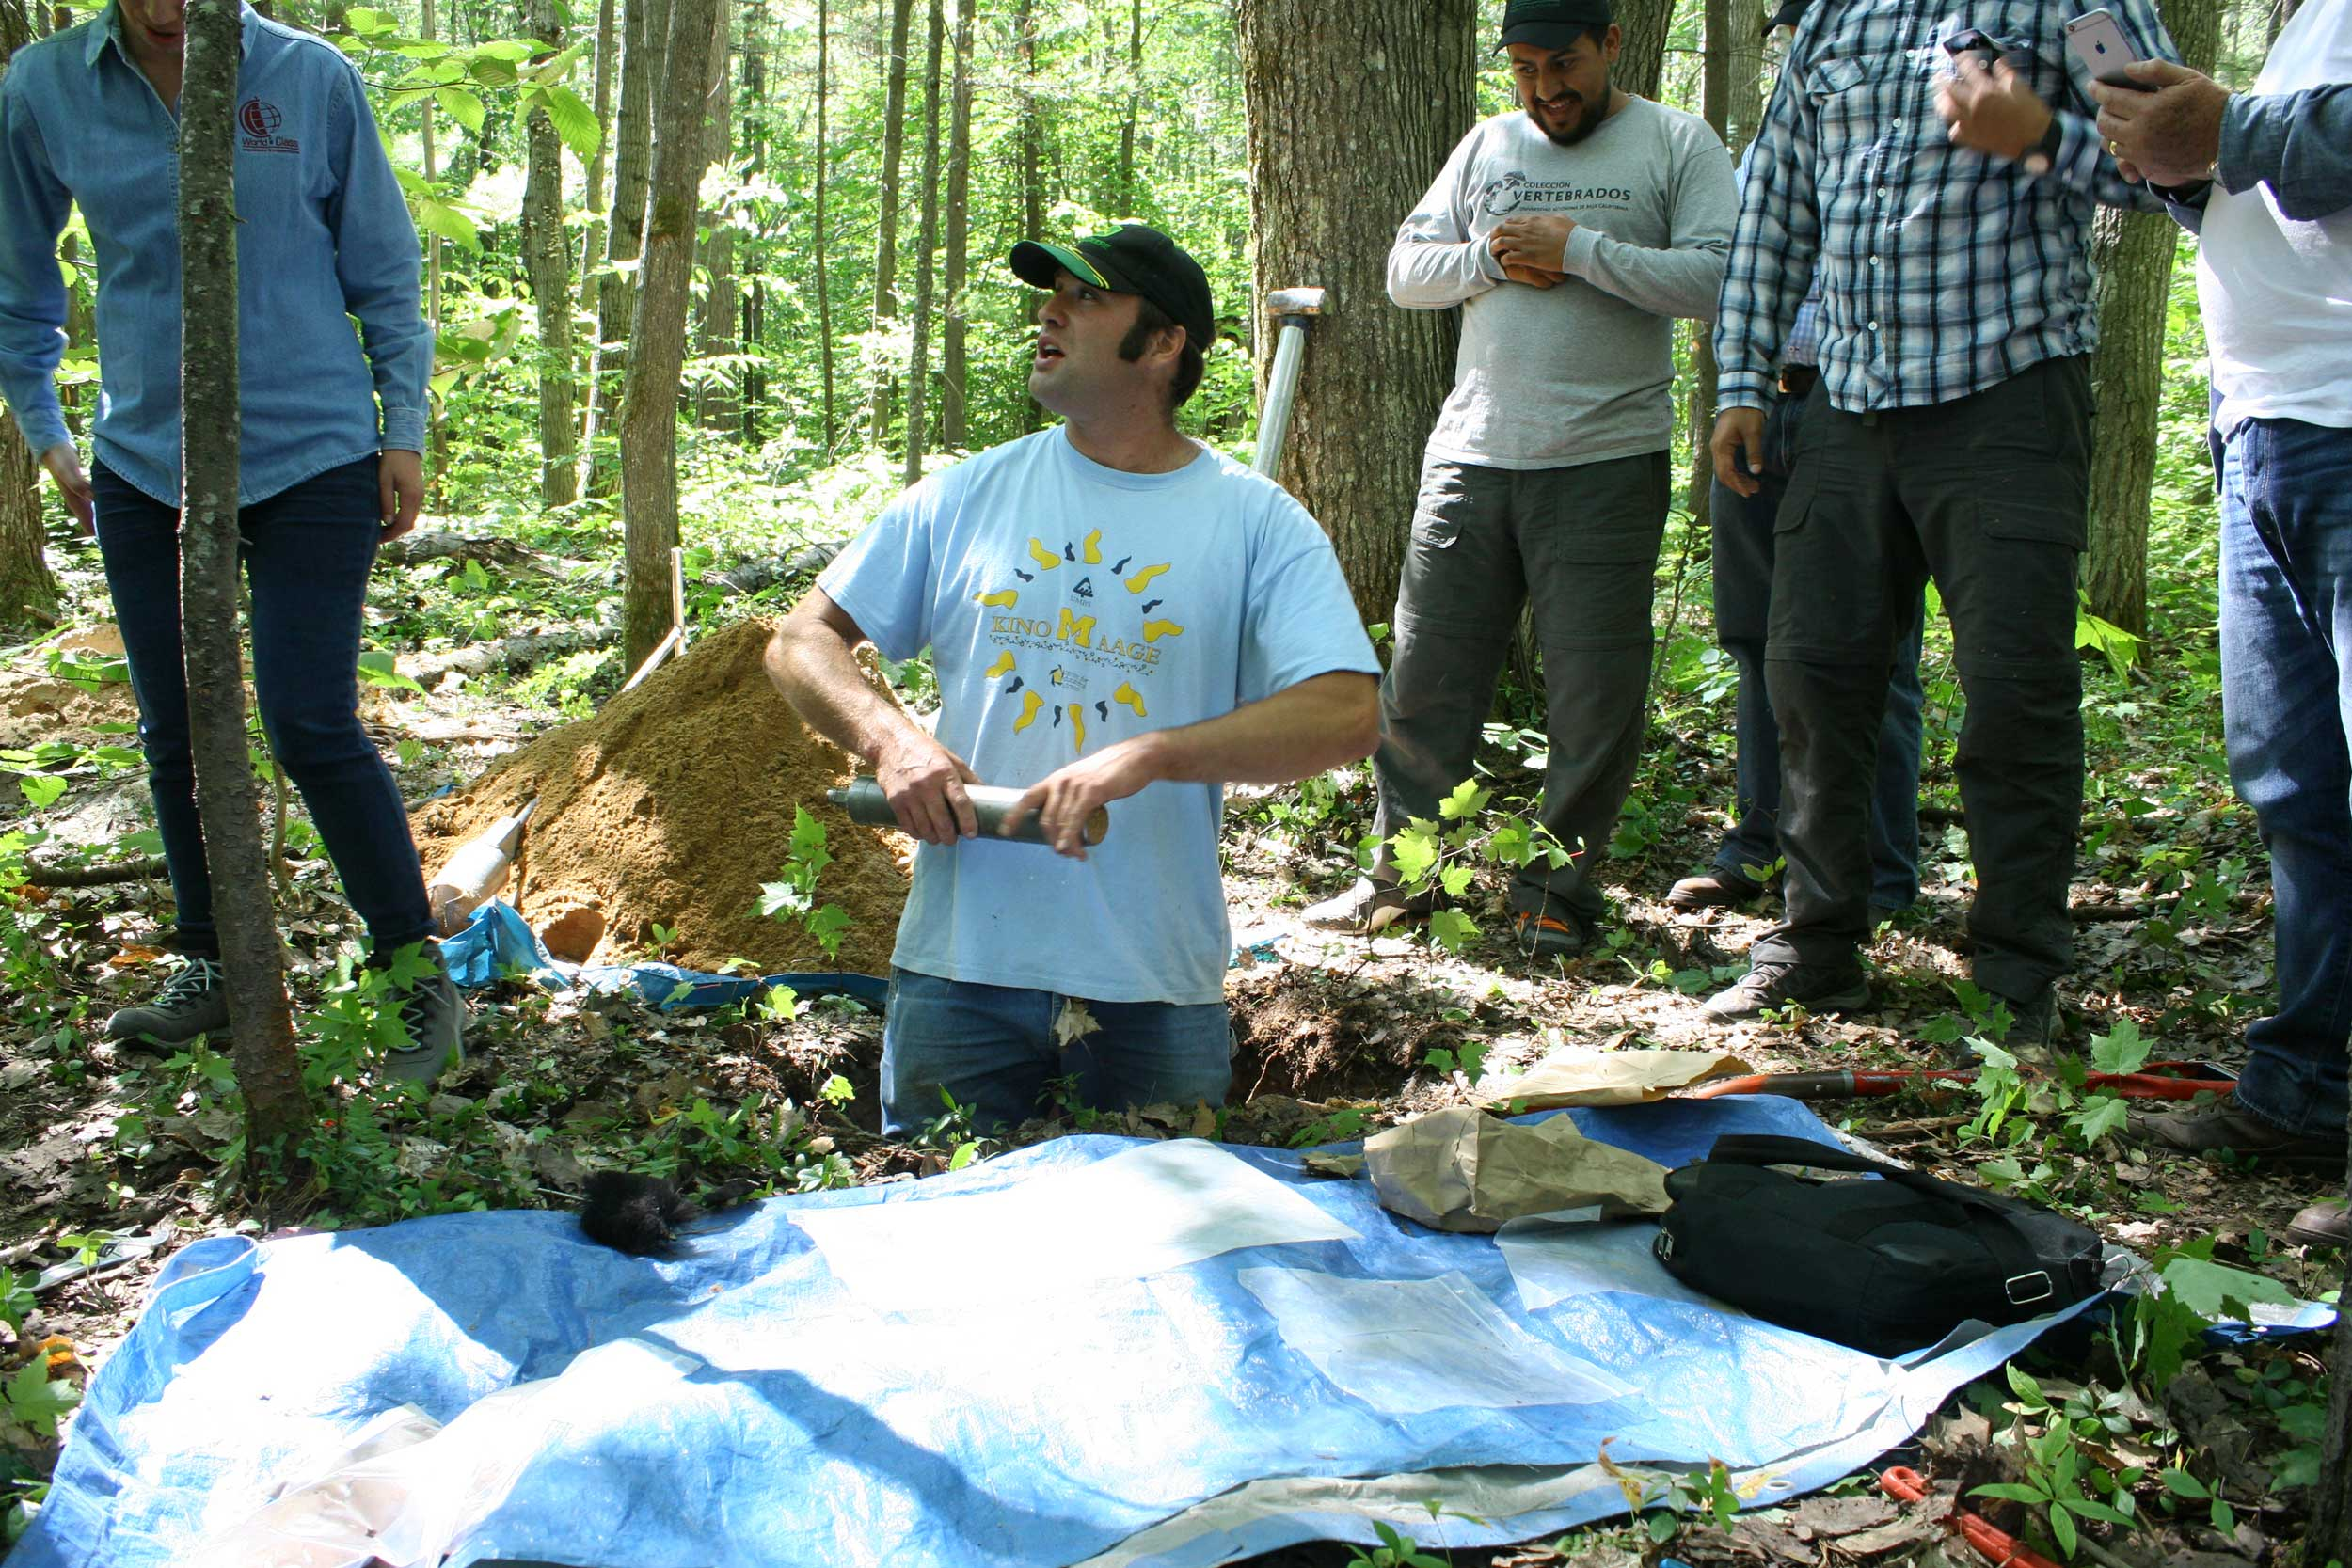 U-M ecologist and biogeochemist Luke Nave demonstrates methods to measure soil carbon during a July 2015 workshop at the University of Michigan Biological Station near Pellston. The annual workshop is held in partnership with the International Soil Carbon Network, the U.S. Forest Service, the U.S. Agency for International Development, and other domestic and international organizations. Image credit: Kailey Marcinkowski, Northern Institute of Applied Climate Science